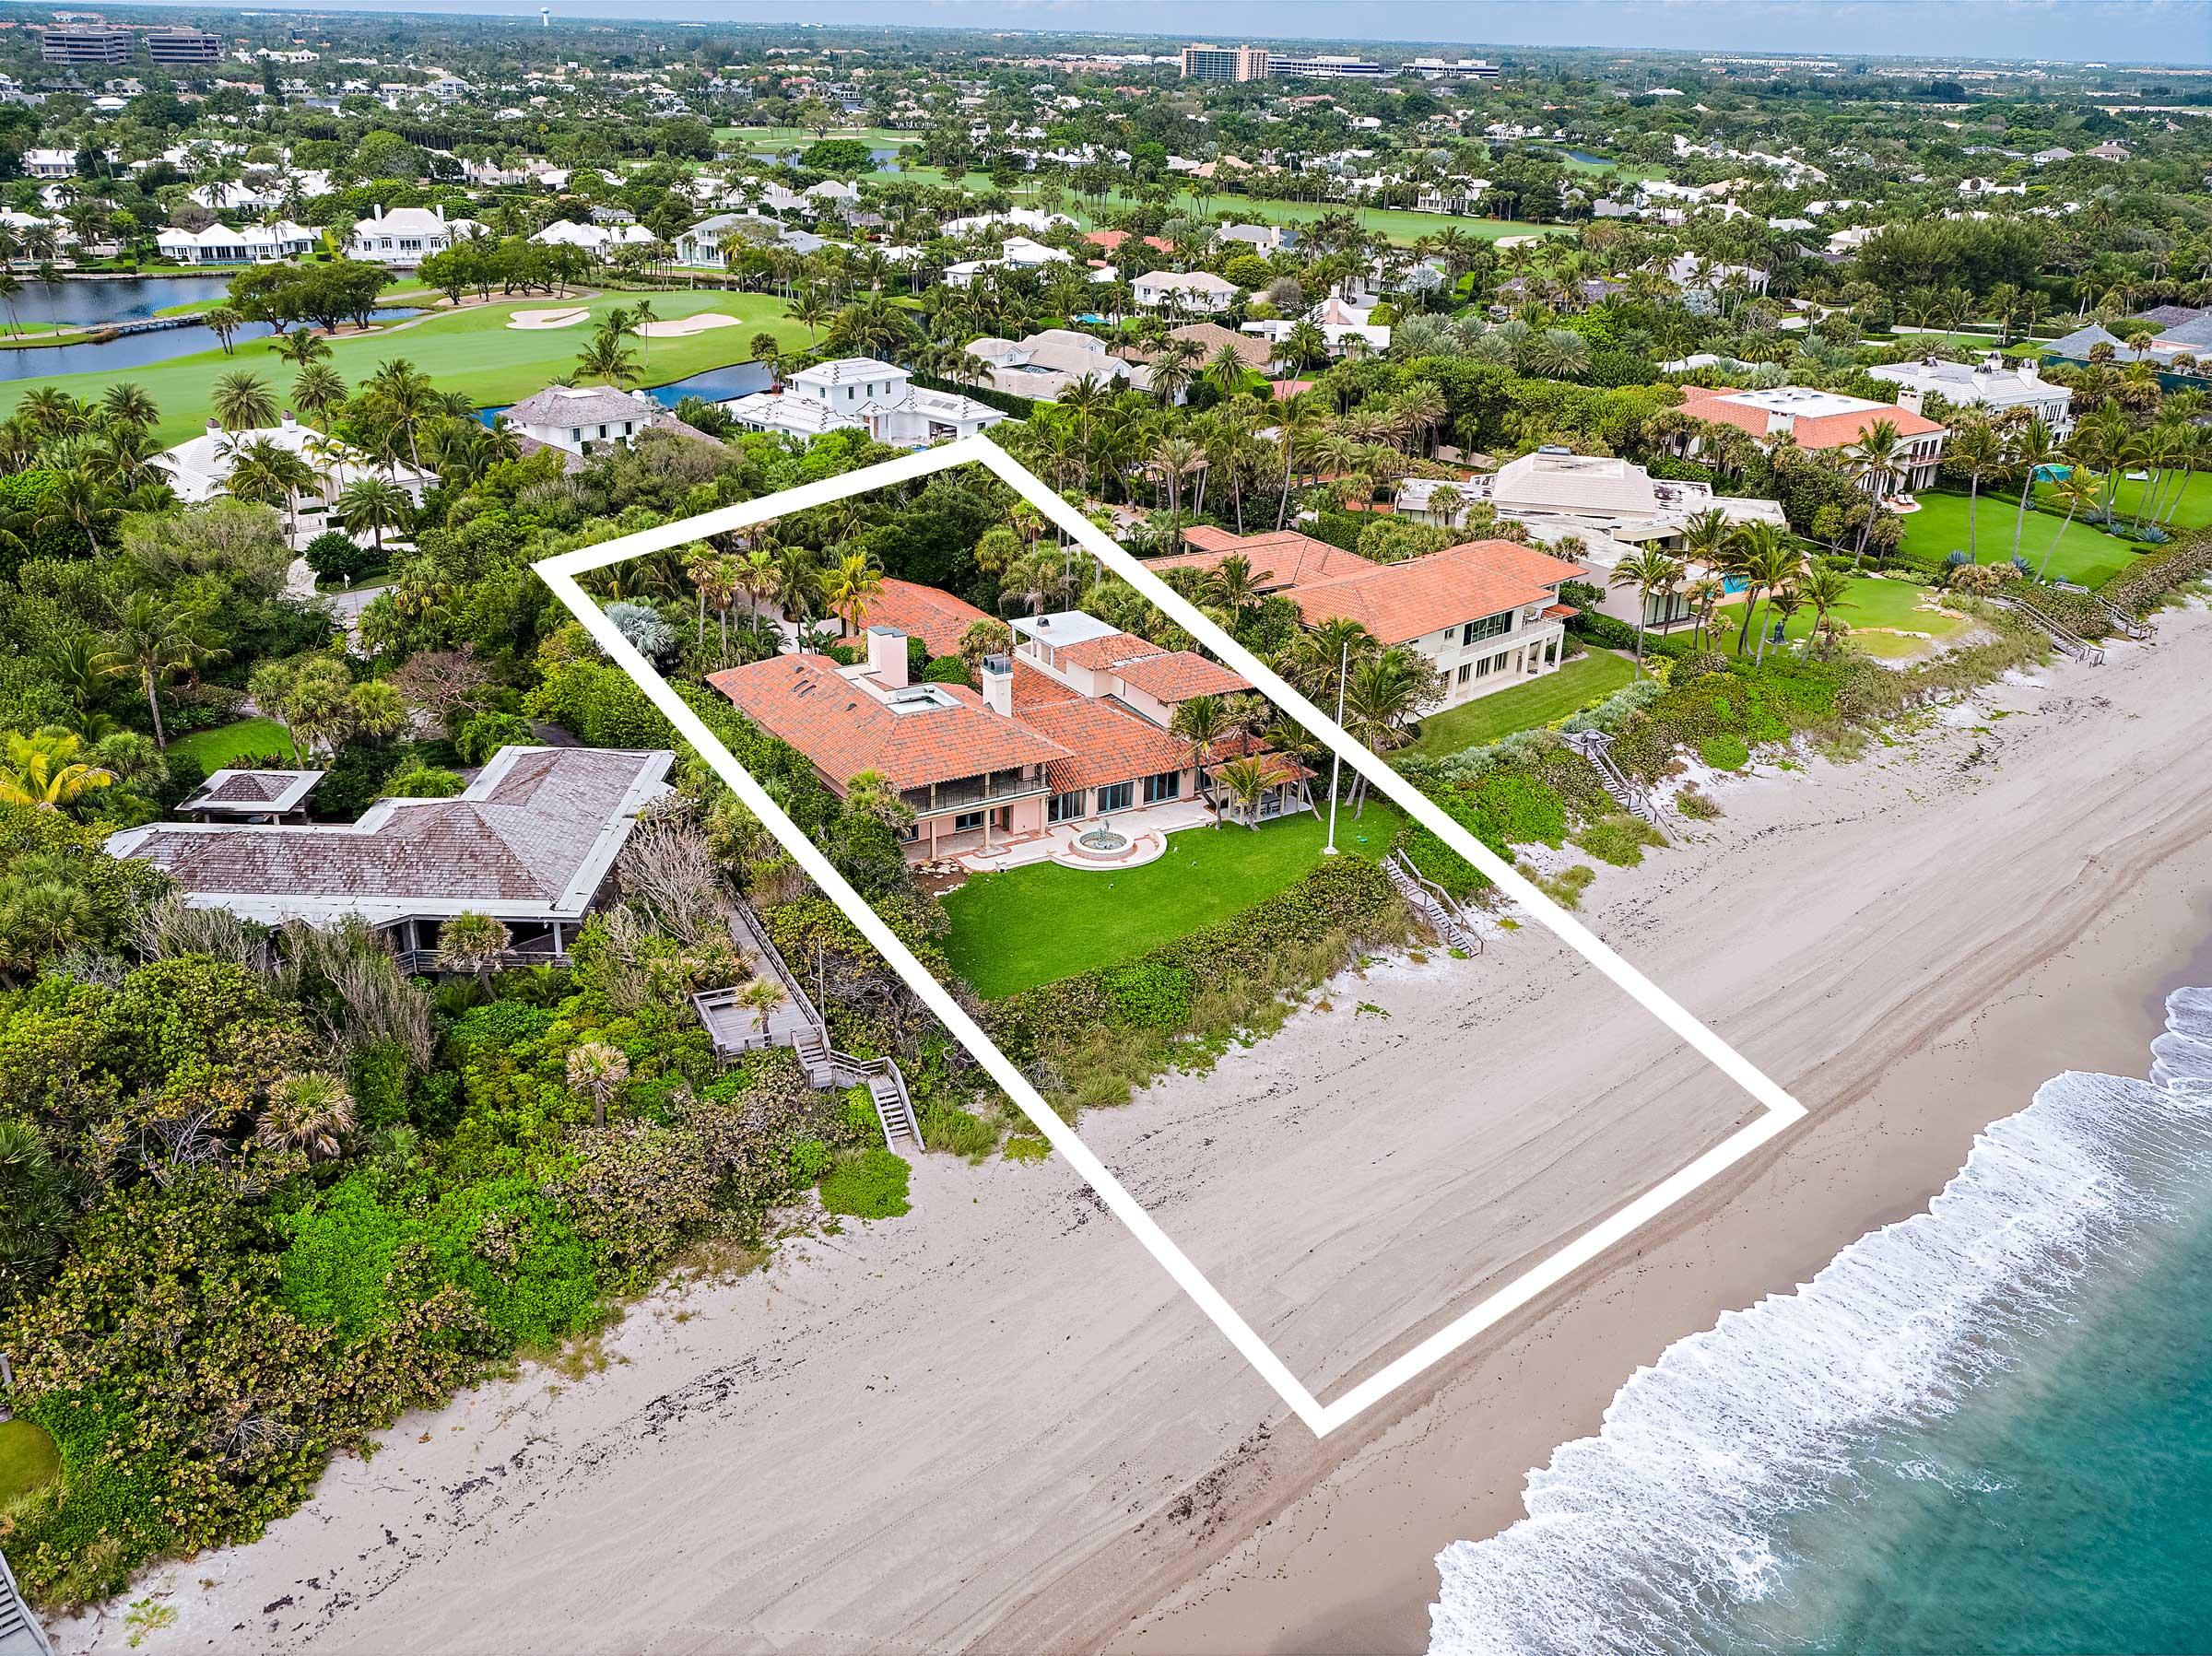 11784 Turtle Beach Road, North Palm Beach, Florida 33408, 5 Bedrooms Bedrooms, ,5.1 BathroomsBathrooms,A,Single family,Turtle Beach,RX-10528447